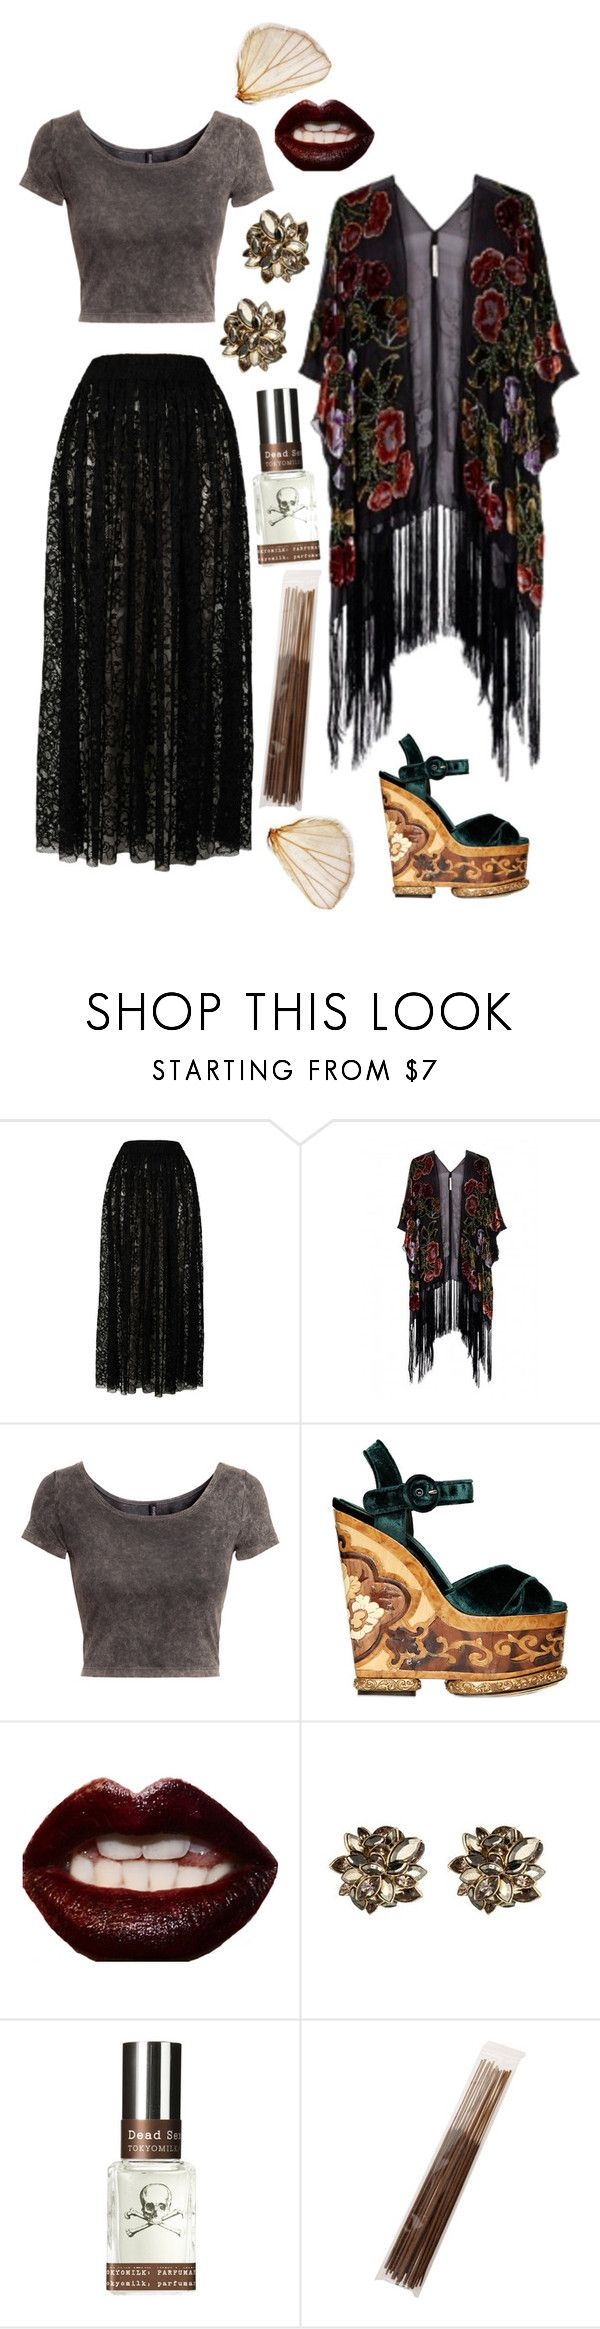 """""""Bohemian Goth"""" by emelynmichal ❤ liked on Polyvore featuring Goldie, Kite and Butterfly, H&M, Dolce&Gabbana, Manic Panic NYC, Alexis Bittar, TokyoMilk and Votivo"""